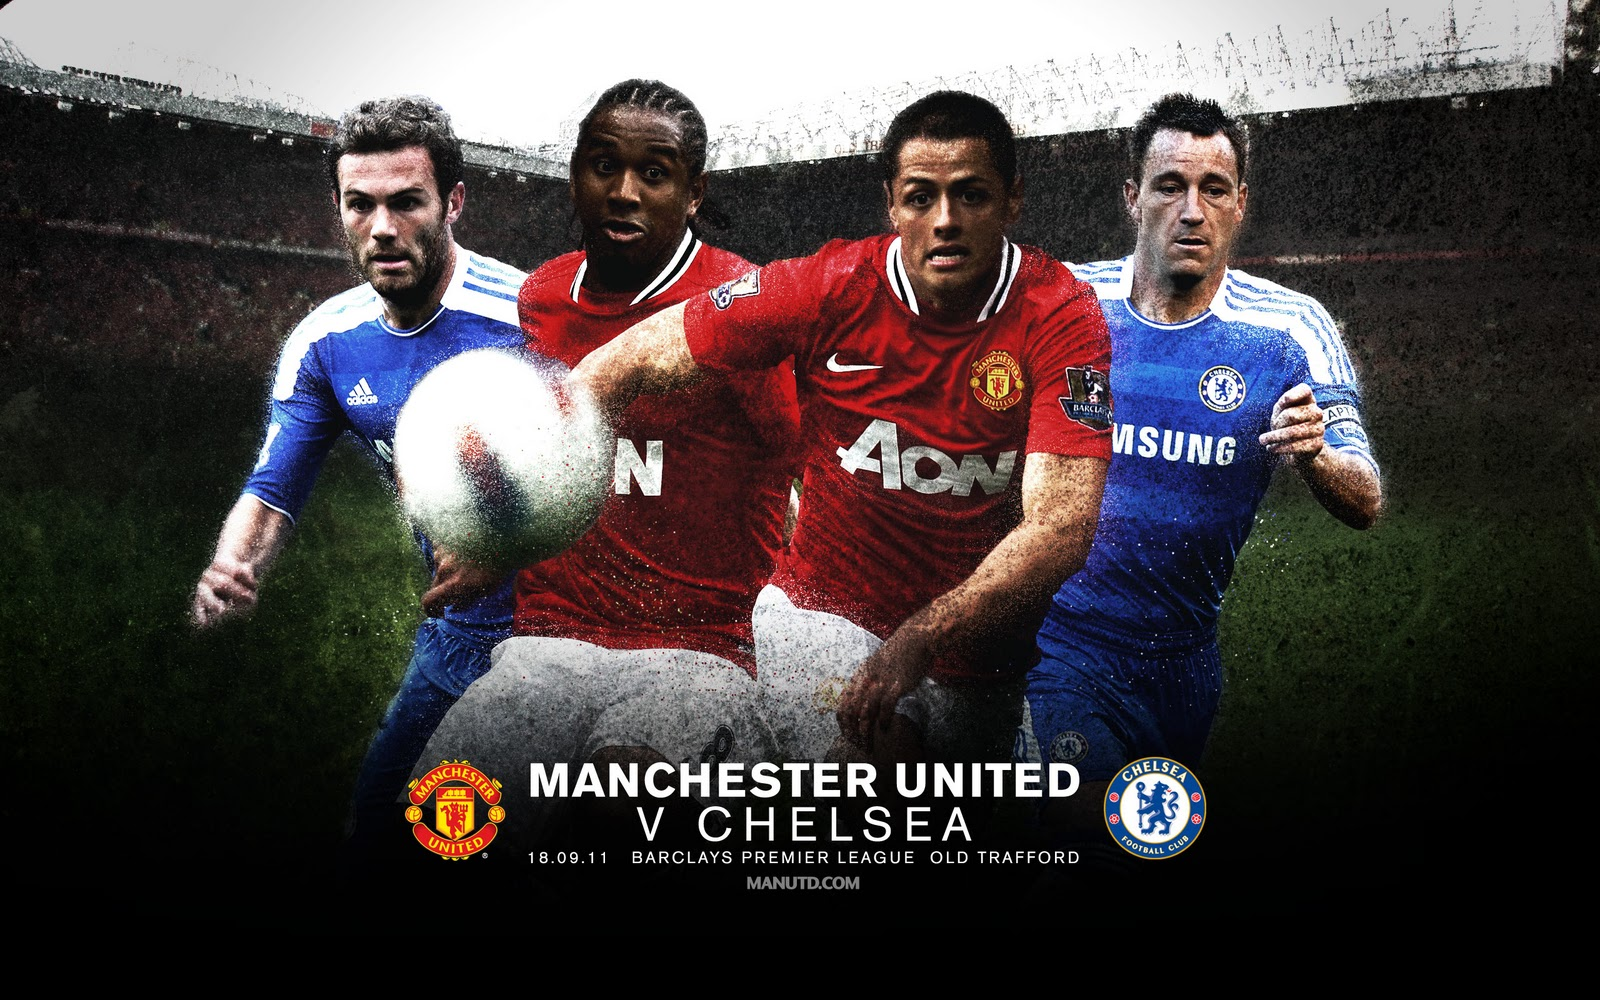 Manchester United Vs Chelsea 2011 2012 Wallpapers Sports Mania